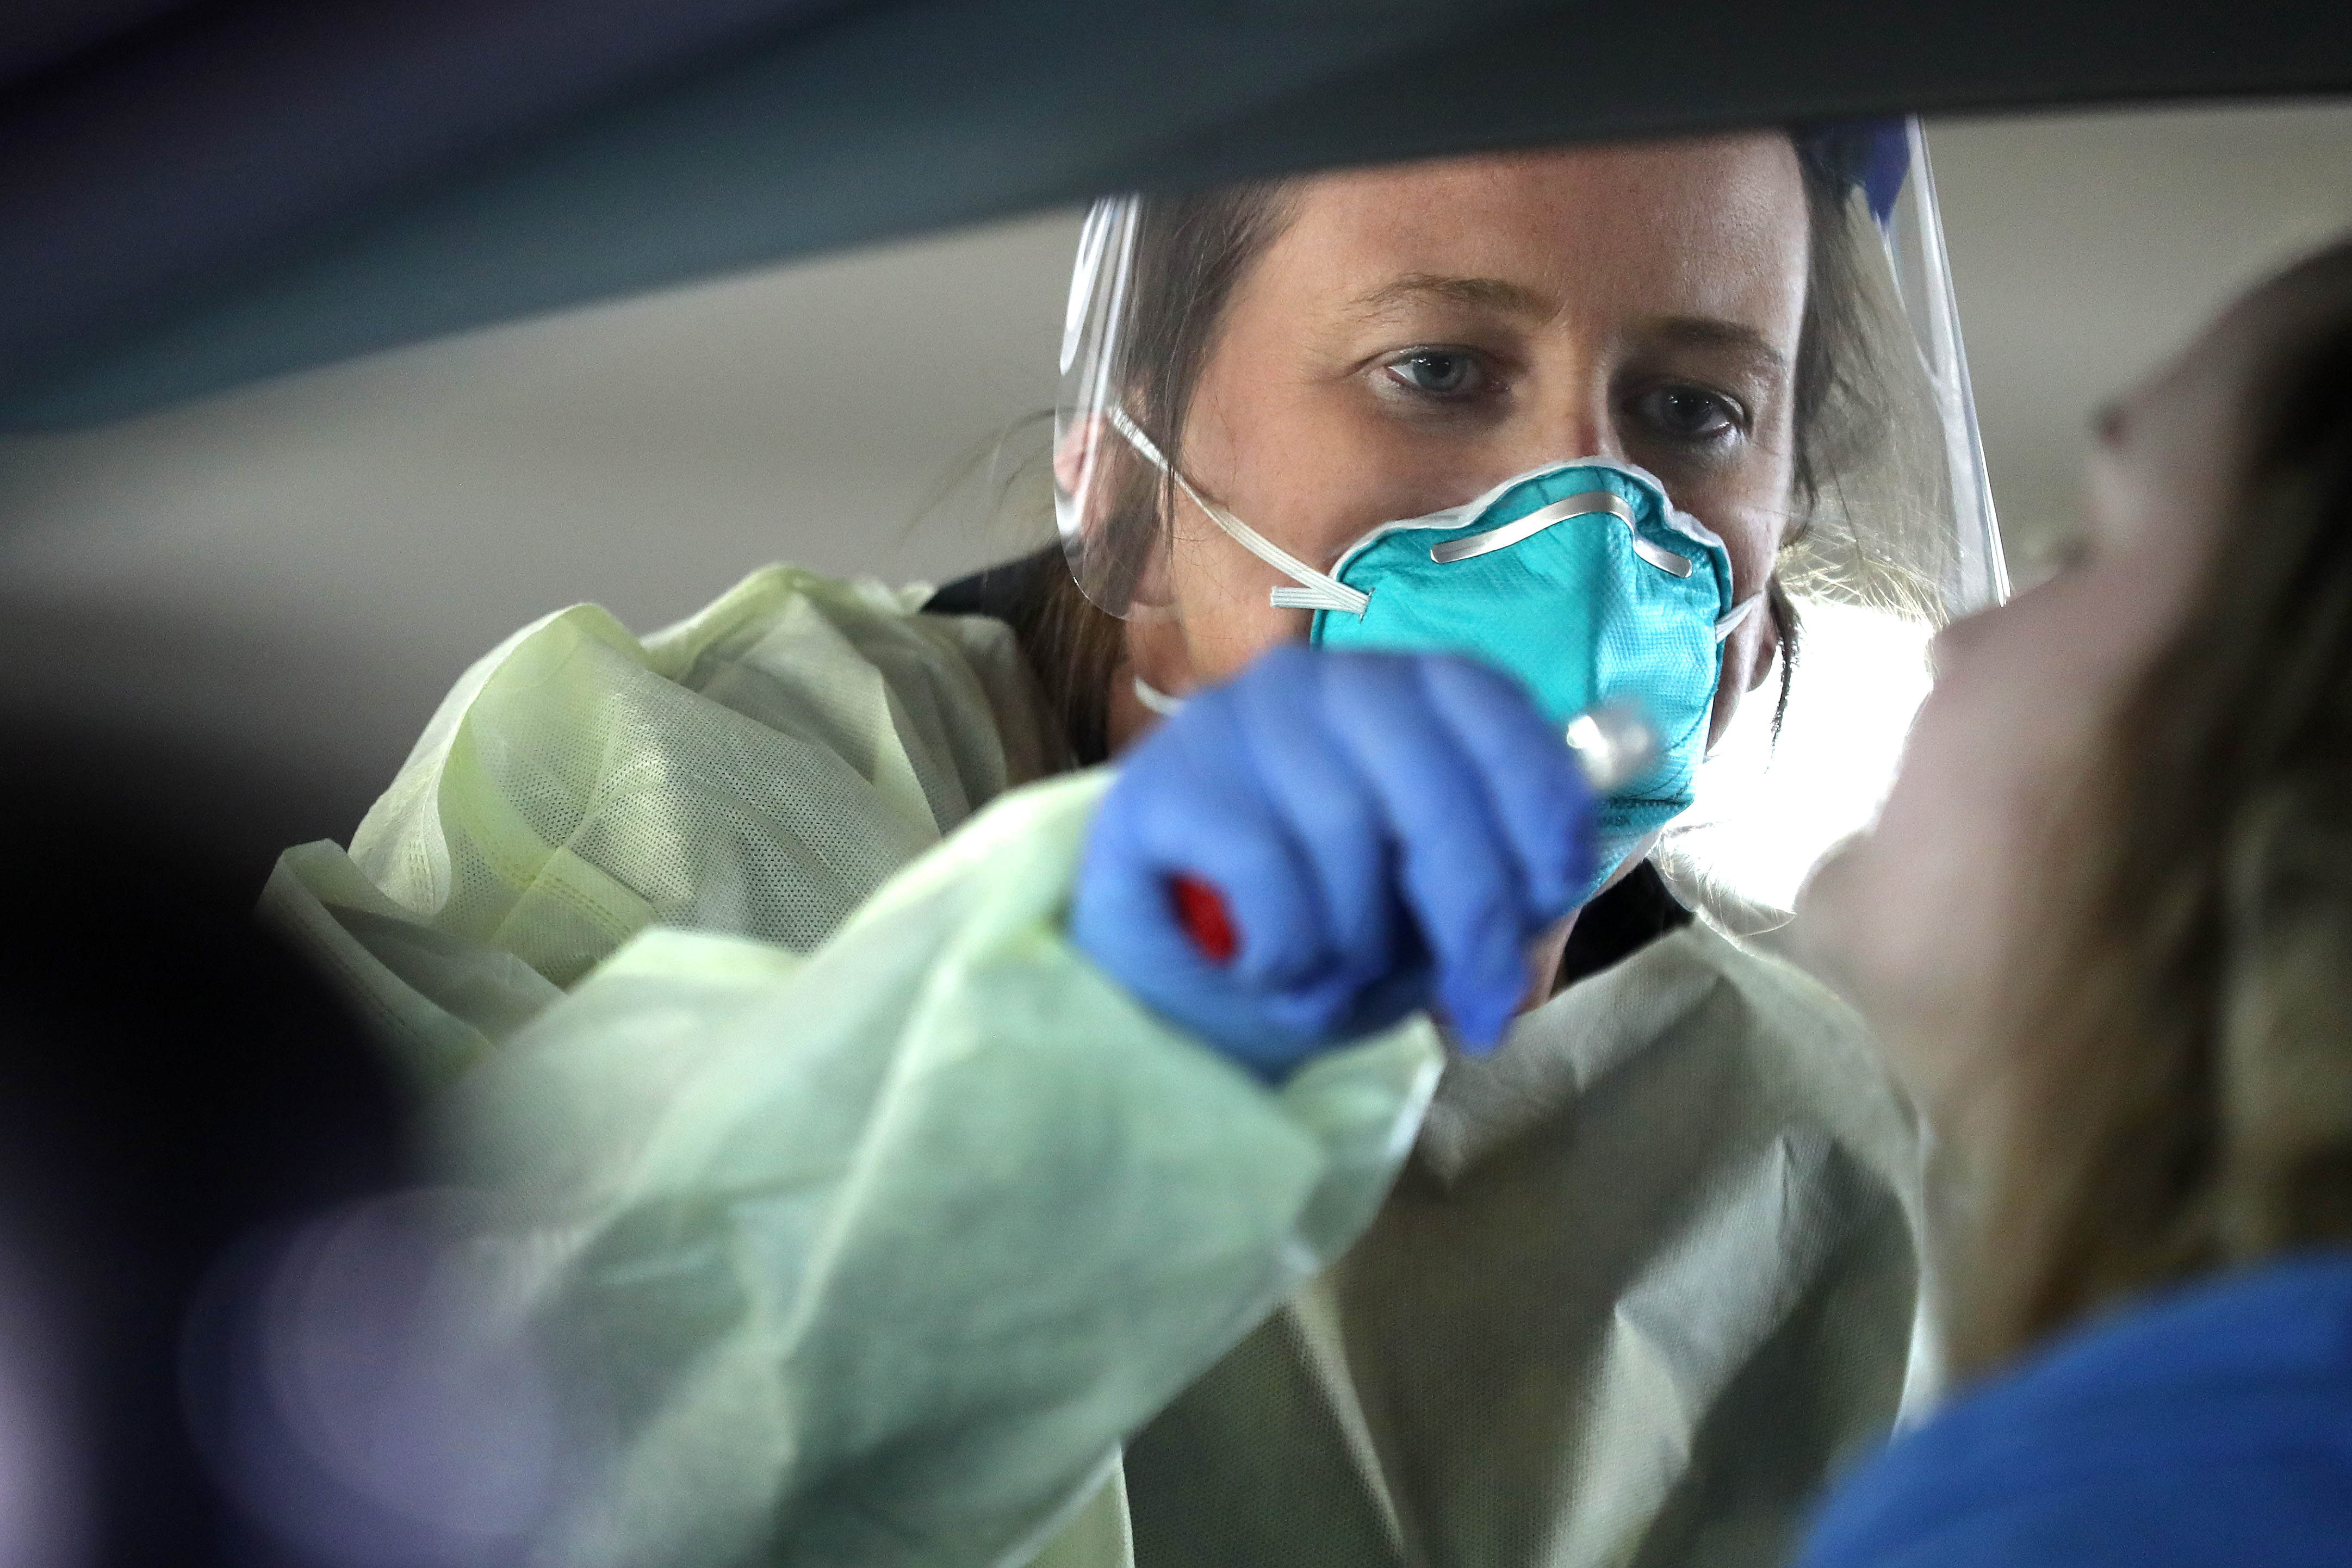 Dawn Canova, clinical manager for outpatient wound care at Carroll Hospital, takes samples from people to test them for the coronavirus at a drive-thru station in the hospital's parking garage while wearing a medical grade mask.